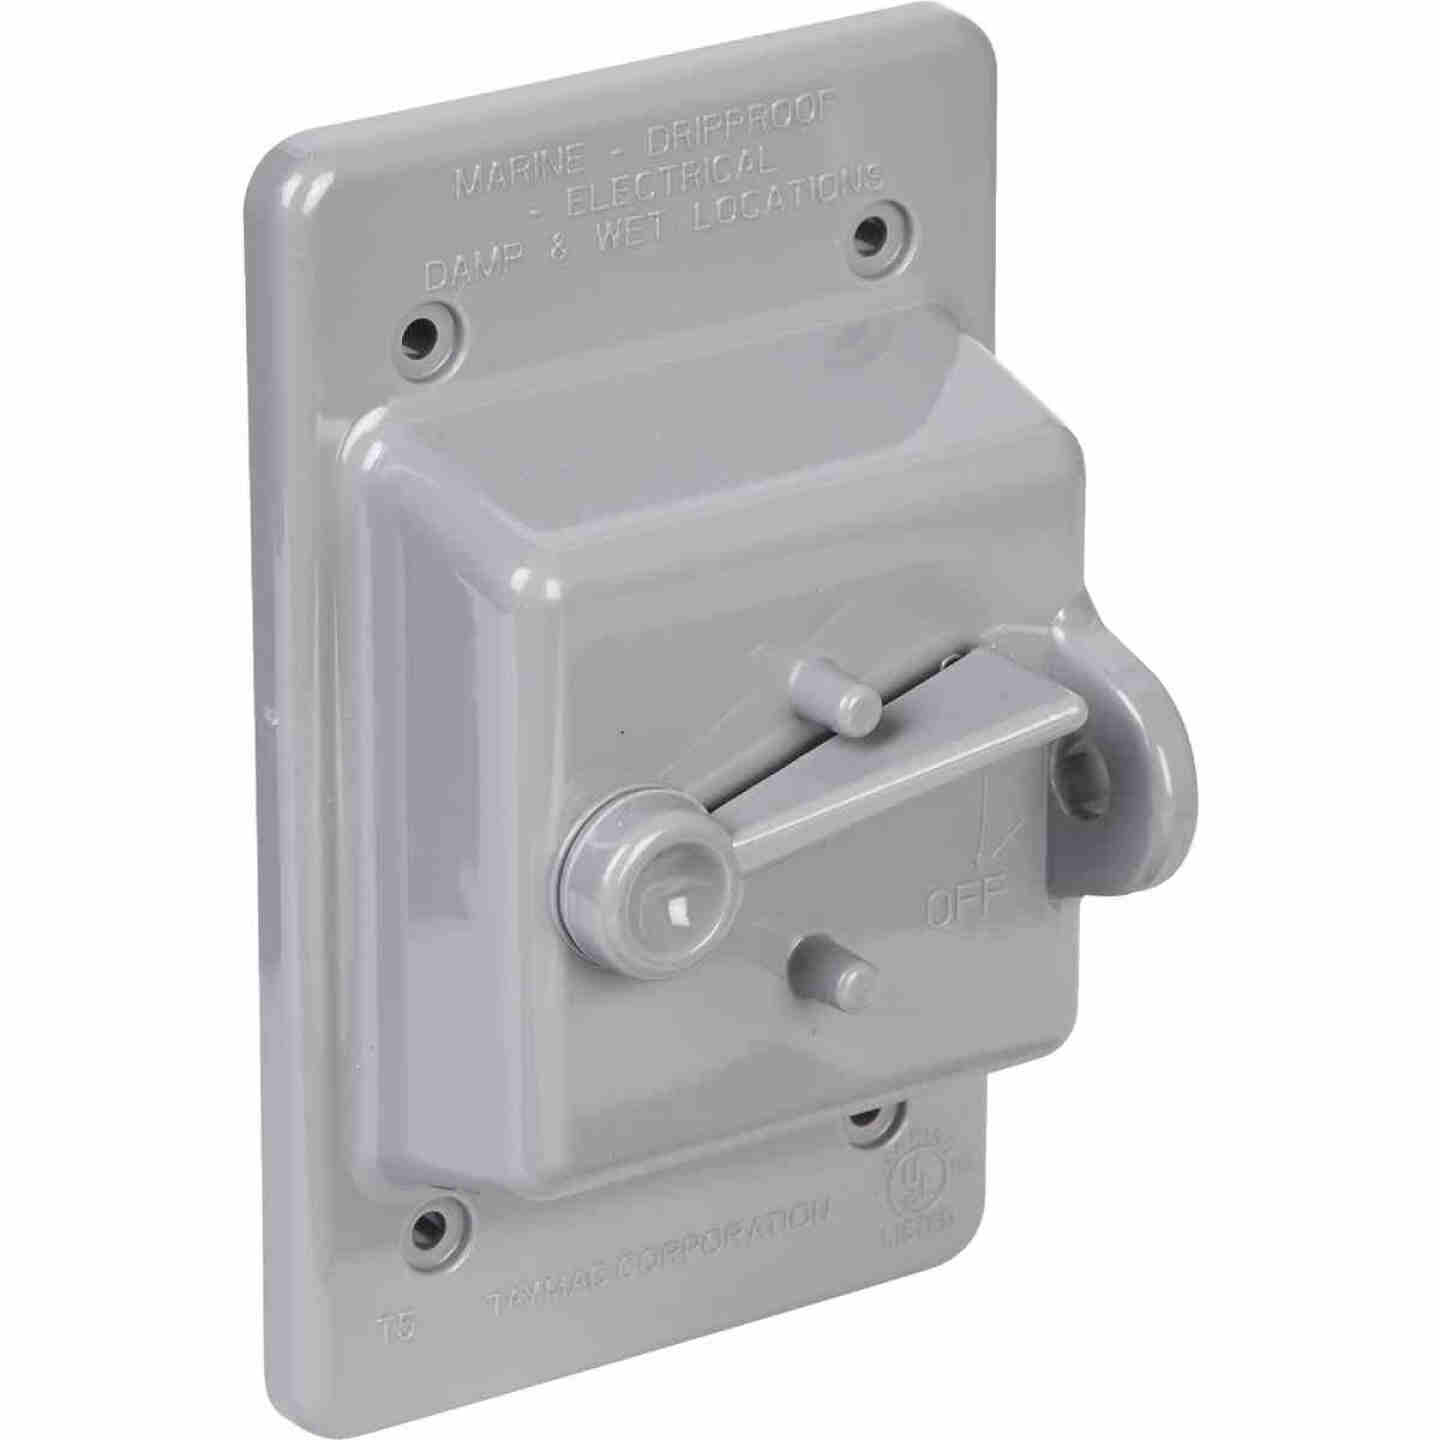 Bell Gray Single Gang Vertical Mount Weatherproof Polycarbonate Outdoor Switch Cover Image 3